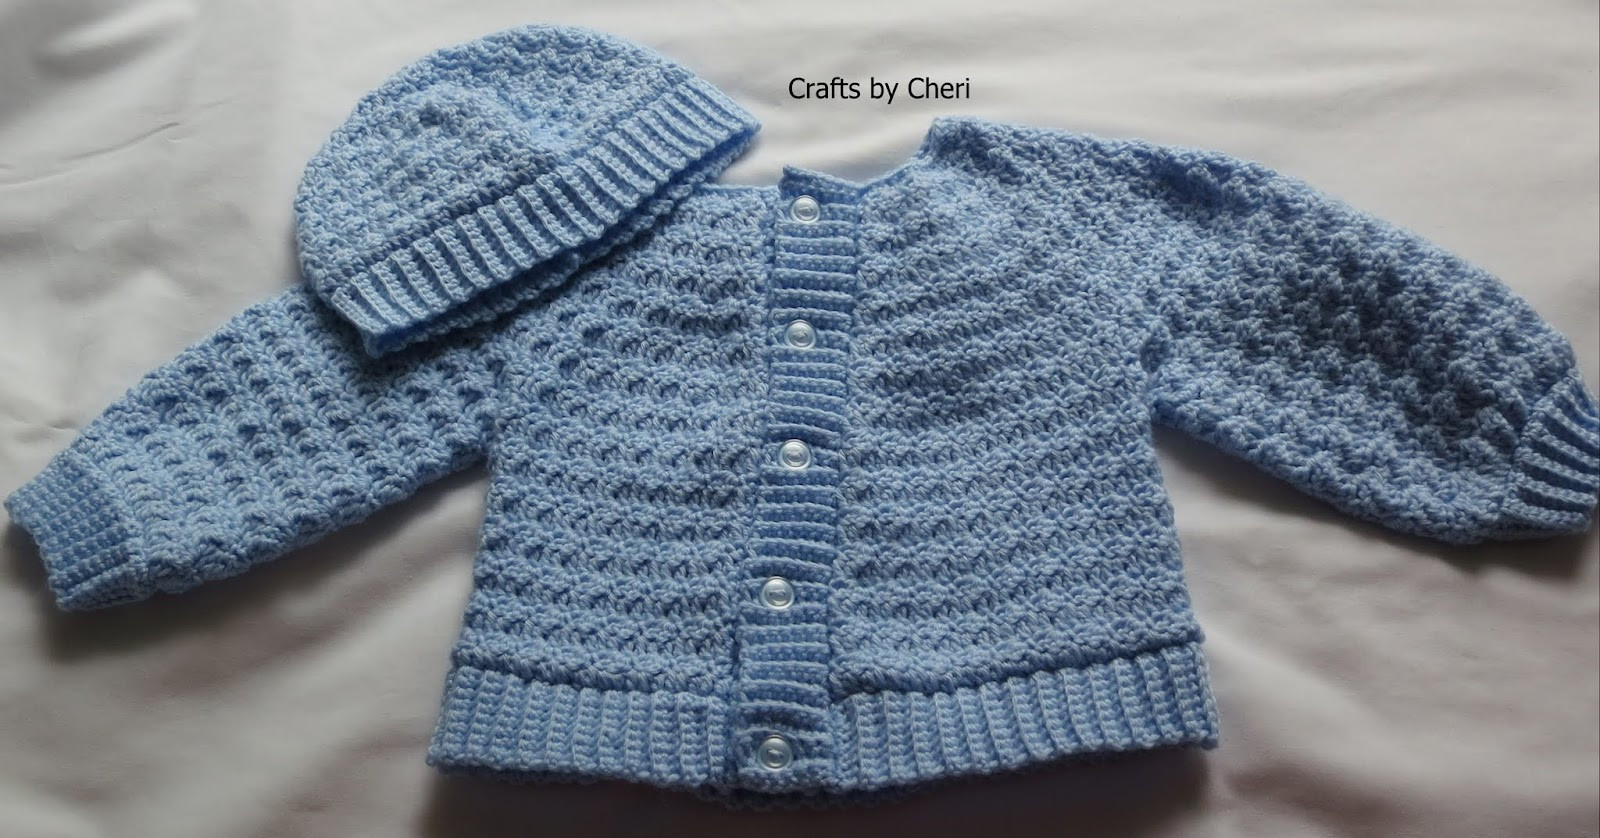 Crochet Baby Clothing Awesome Crochet Baby Boy Clothes Of Amazing 44 Ideas Crochet Baby Clothing